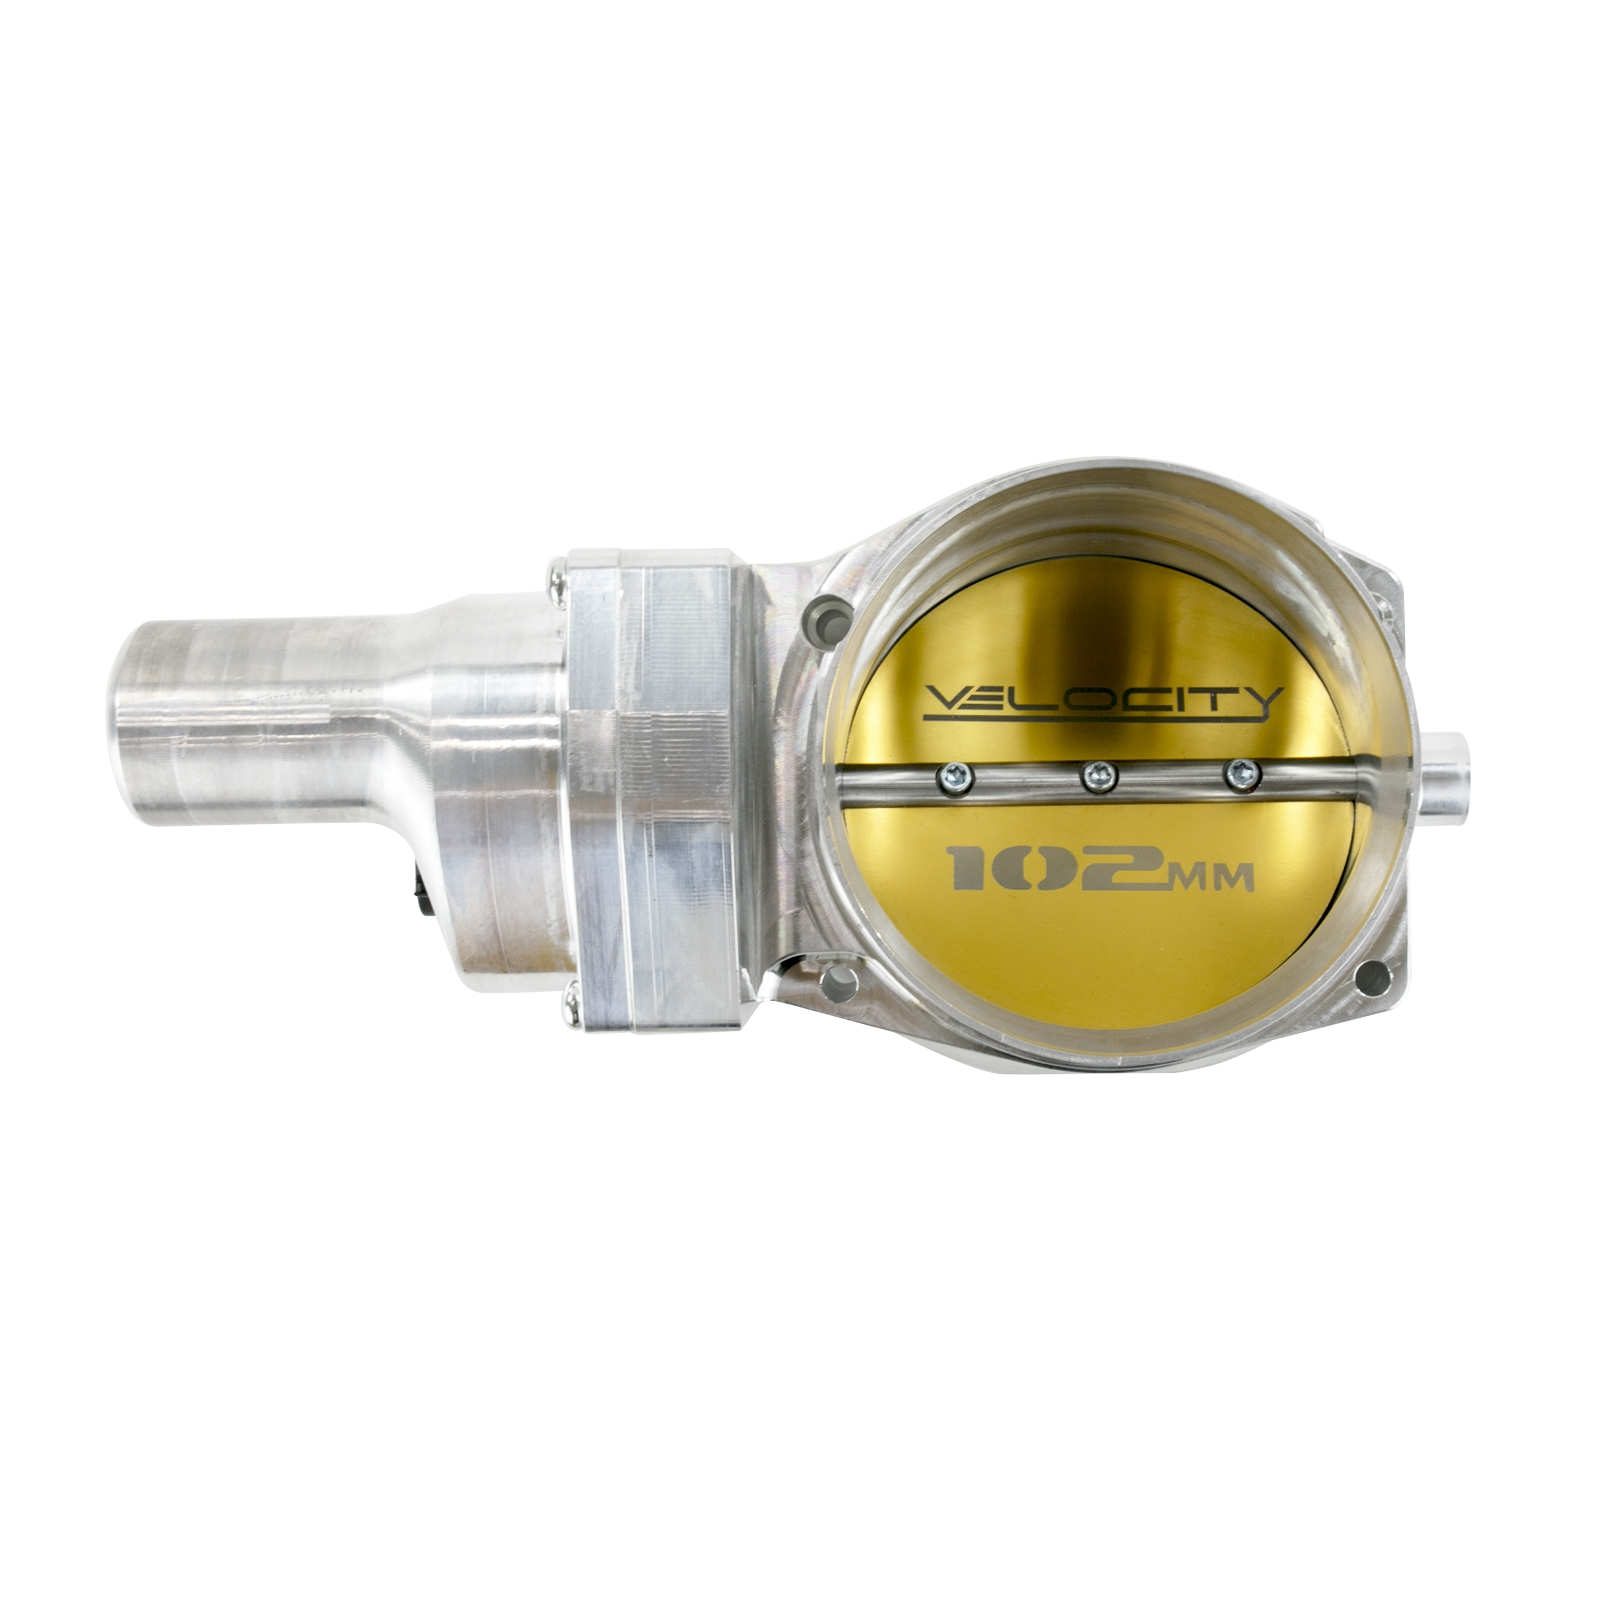 TSP Velocity 102 mm 4-Bolt LS Drive by Wire Throttle Body, Corvette, Camaro and others